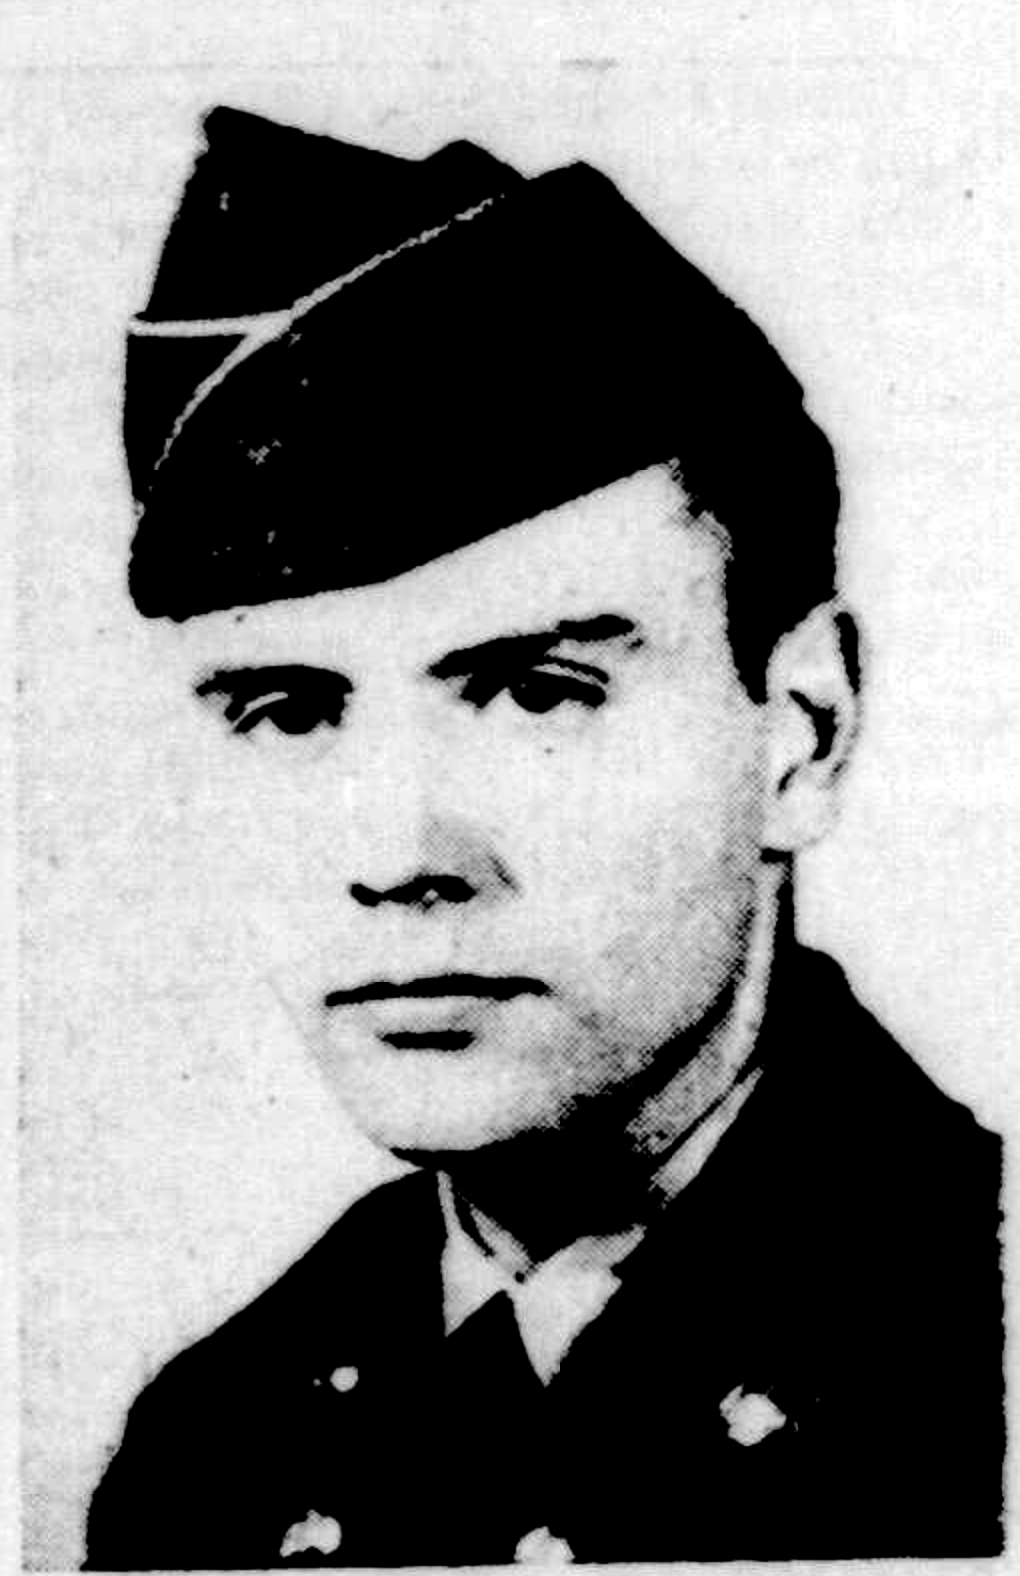 Attached photograph of Private First Class Geiger